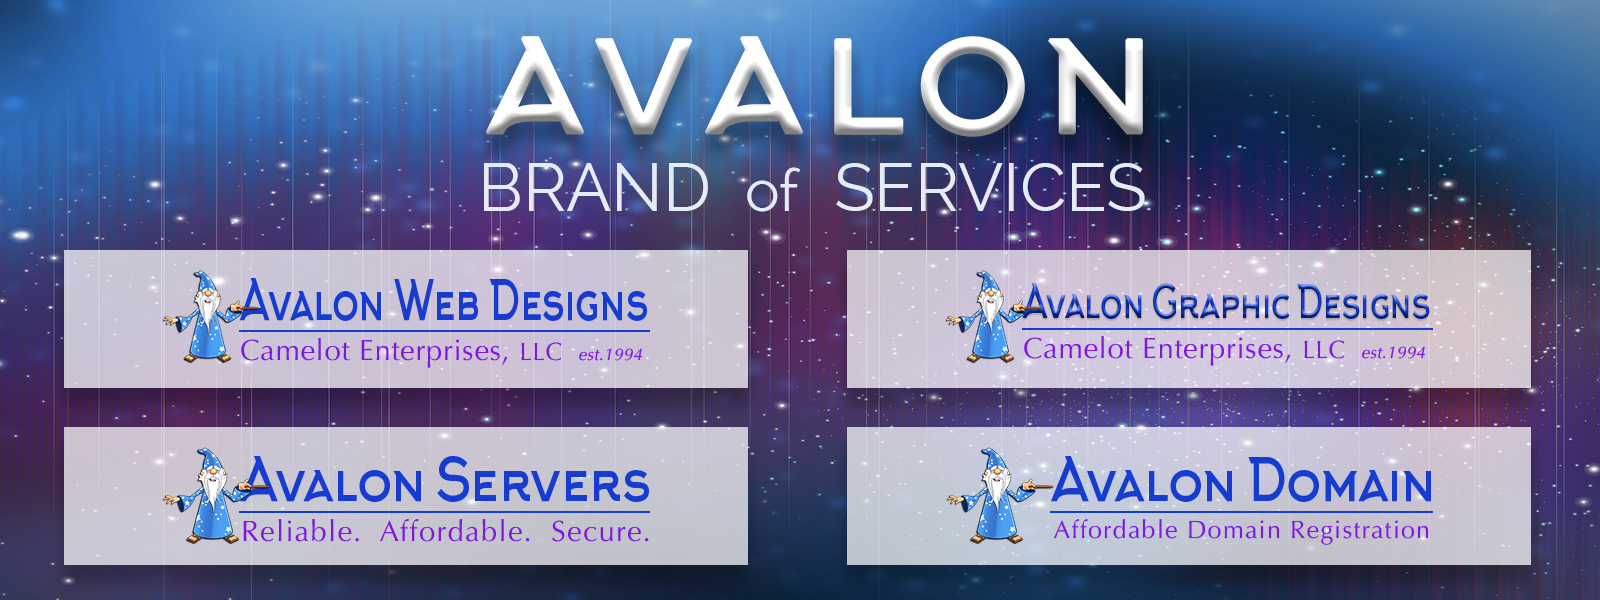 Camelot Enterprises, LLC - est. 1994 | Avalon Brand of Services ~ Website Design, Web Hosting, Dedicated Servers, VPS, Cloud Hosting Domain Registration, Graphic Design, Logo Creation, Brand Development, Marketing Materials, Merchandising, Brochure Layout, Business Card Creation, Ad Layouts and MORE!